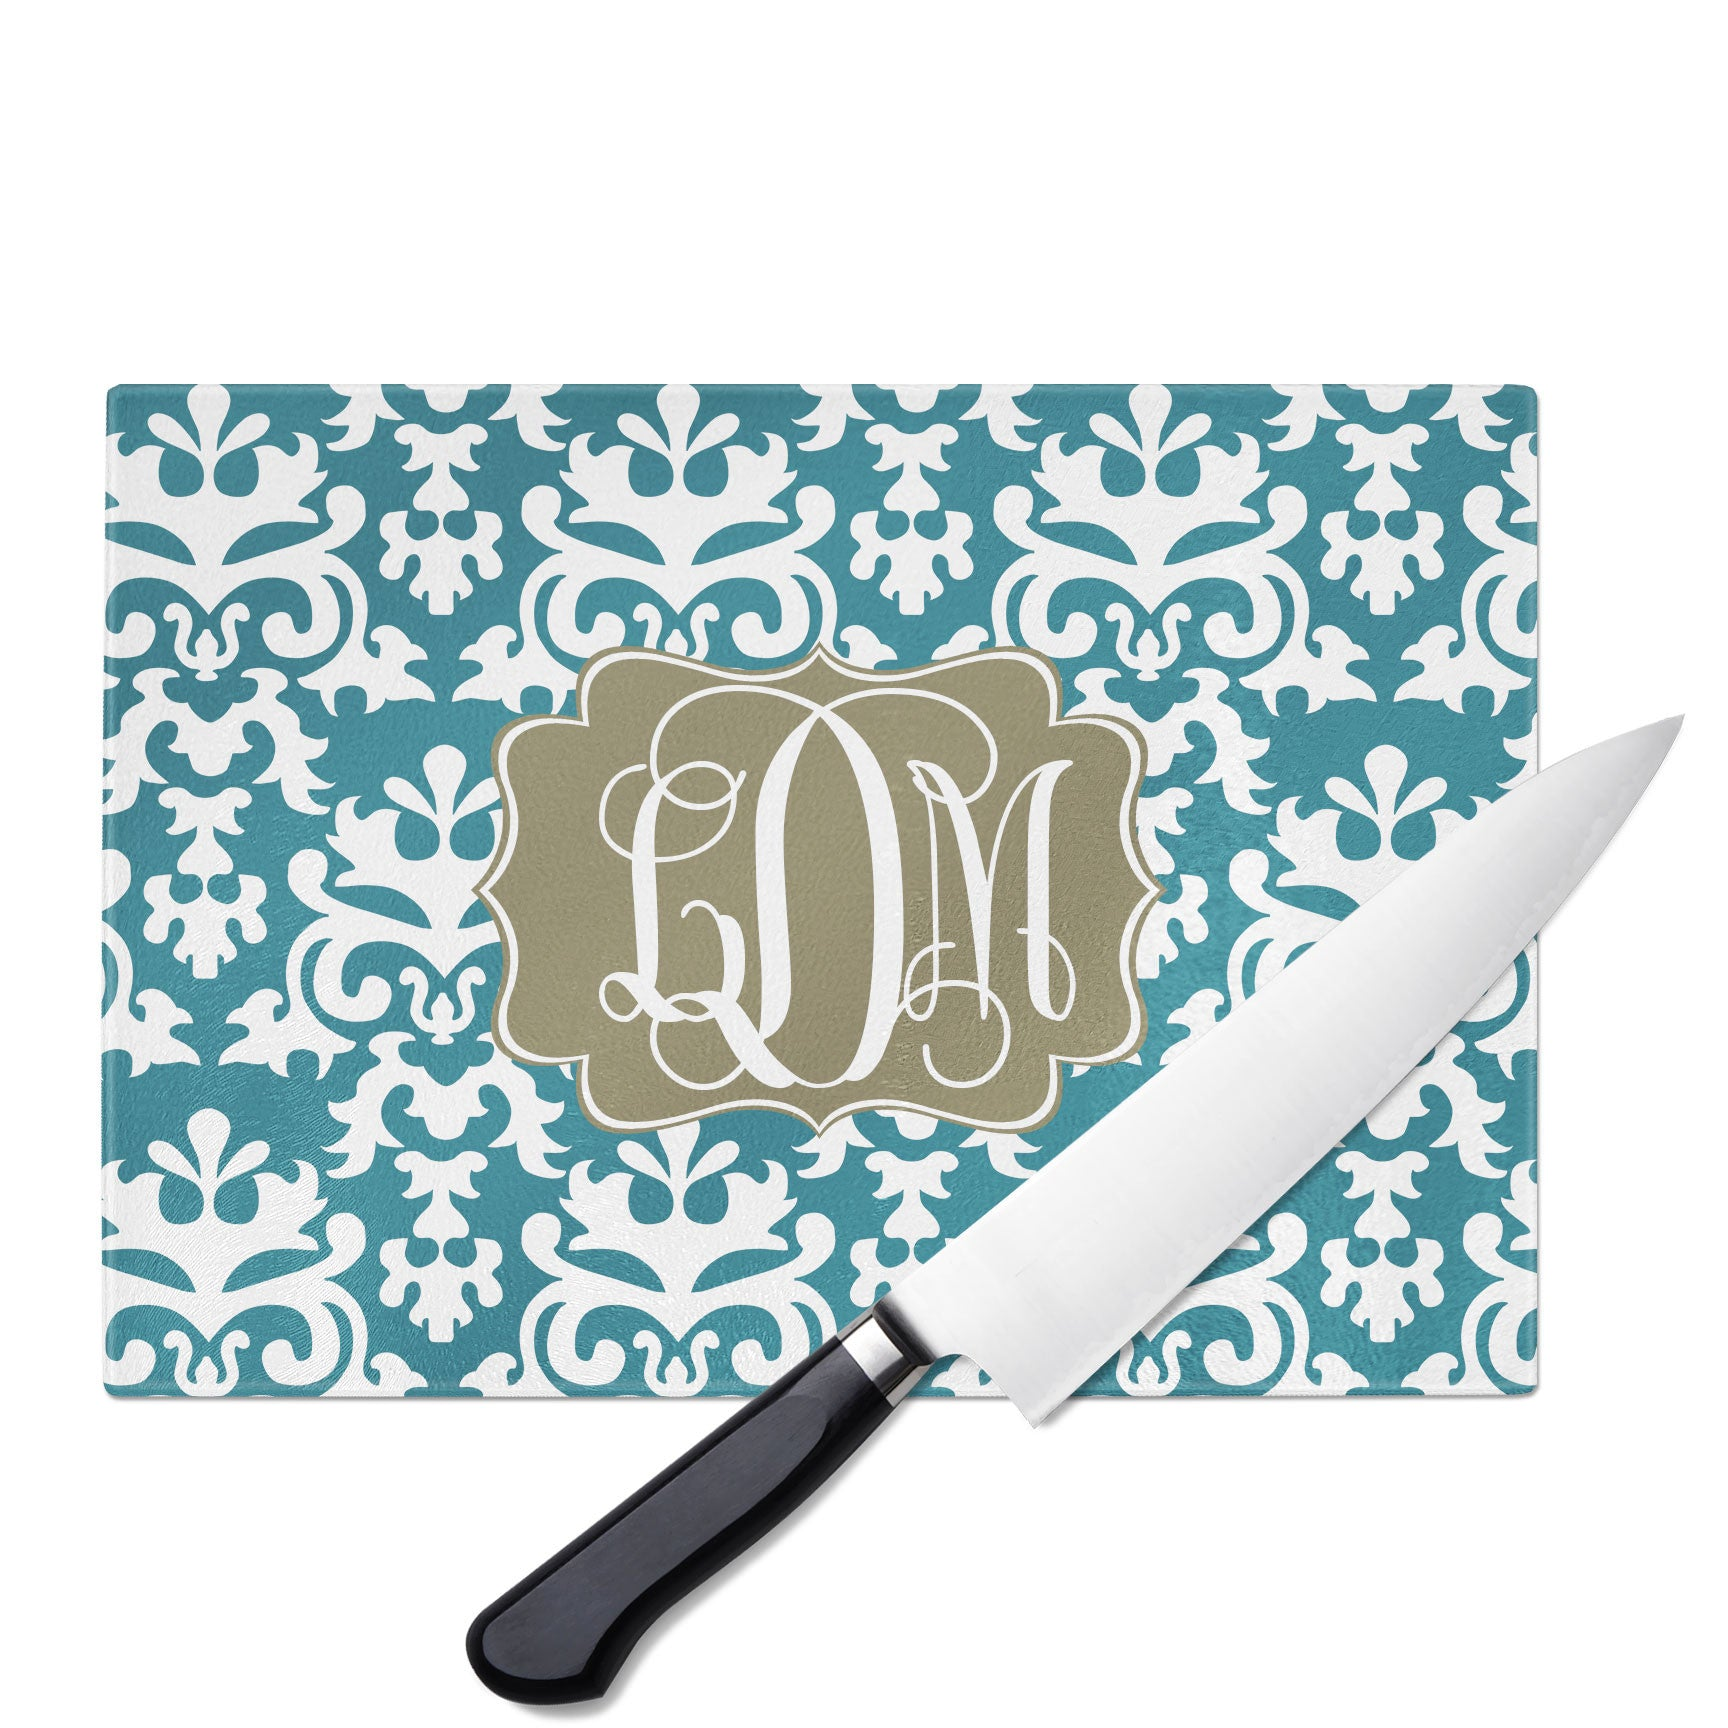 Personalized Glass Cutting Board-Vintage Damask